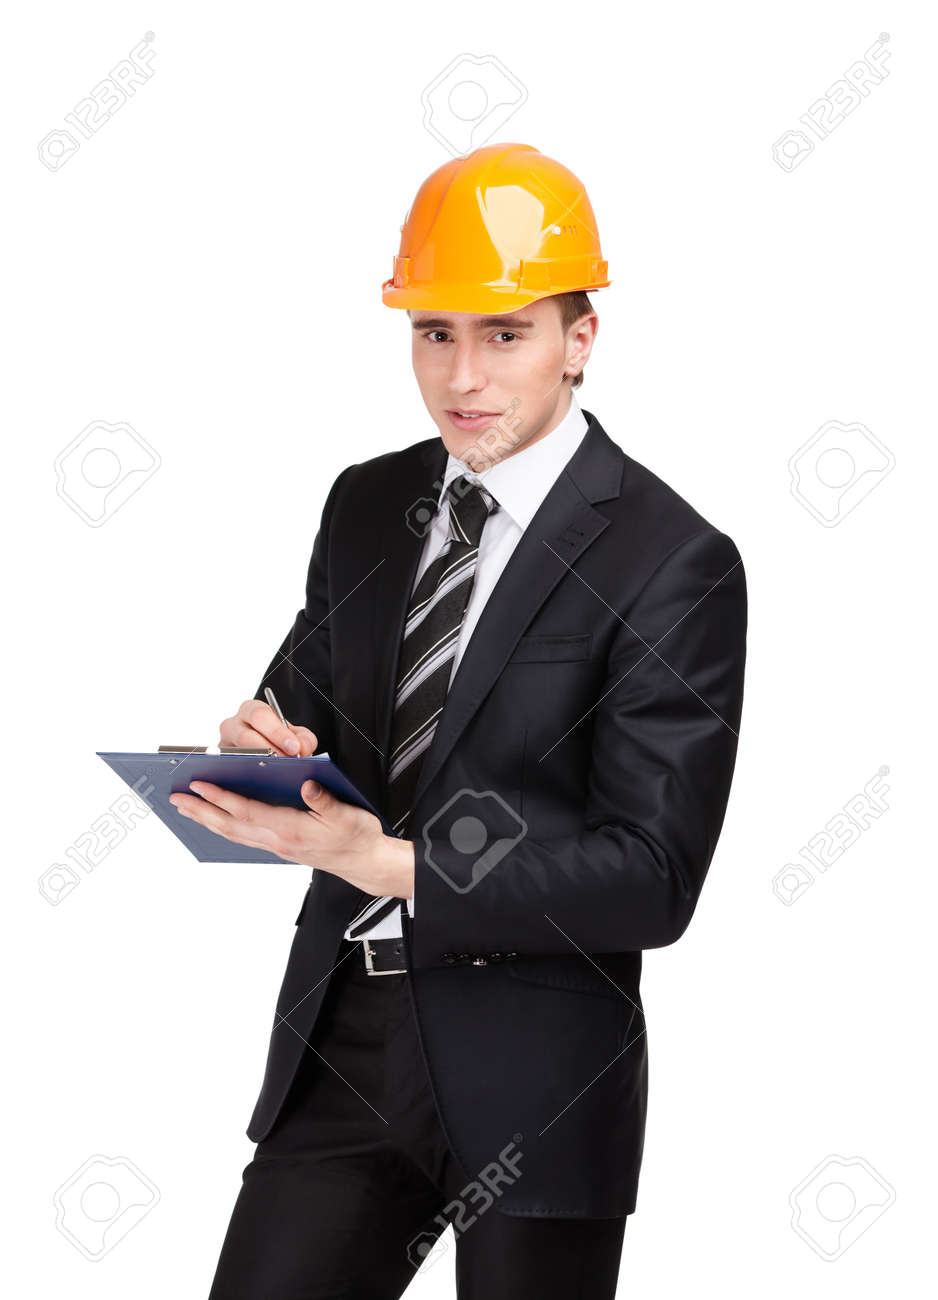 Making notes man in orange headpiece and suit, isolated on white Stock Photo - 16040428